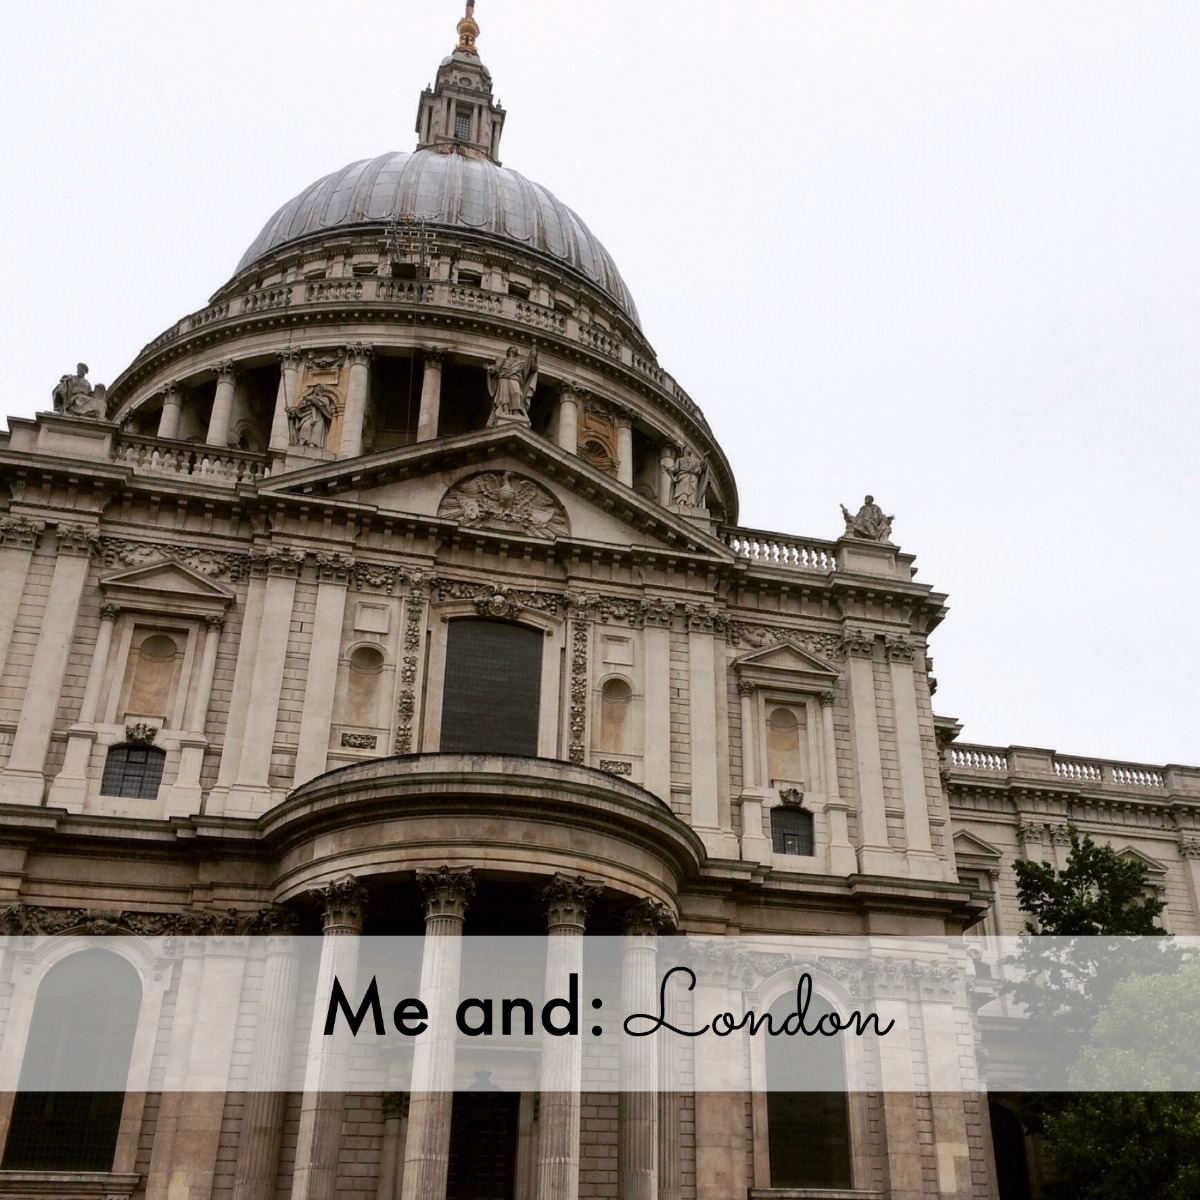 Me and: London